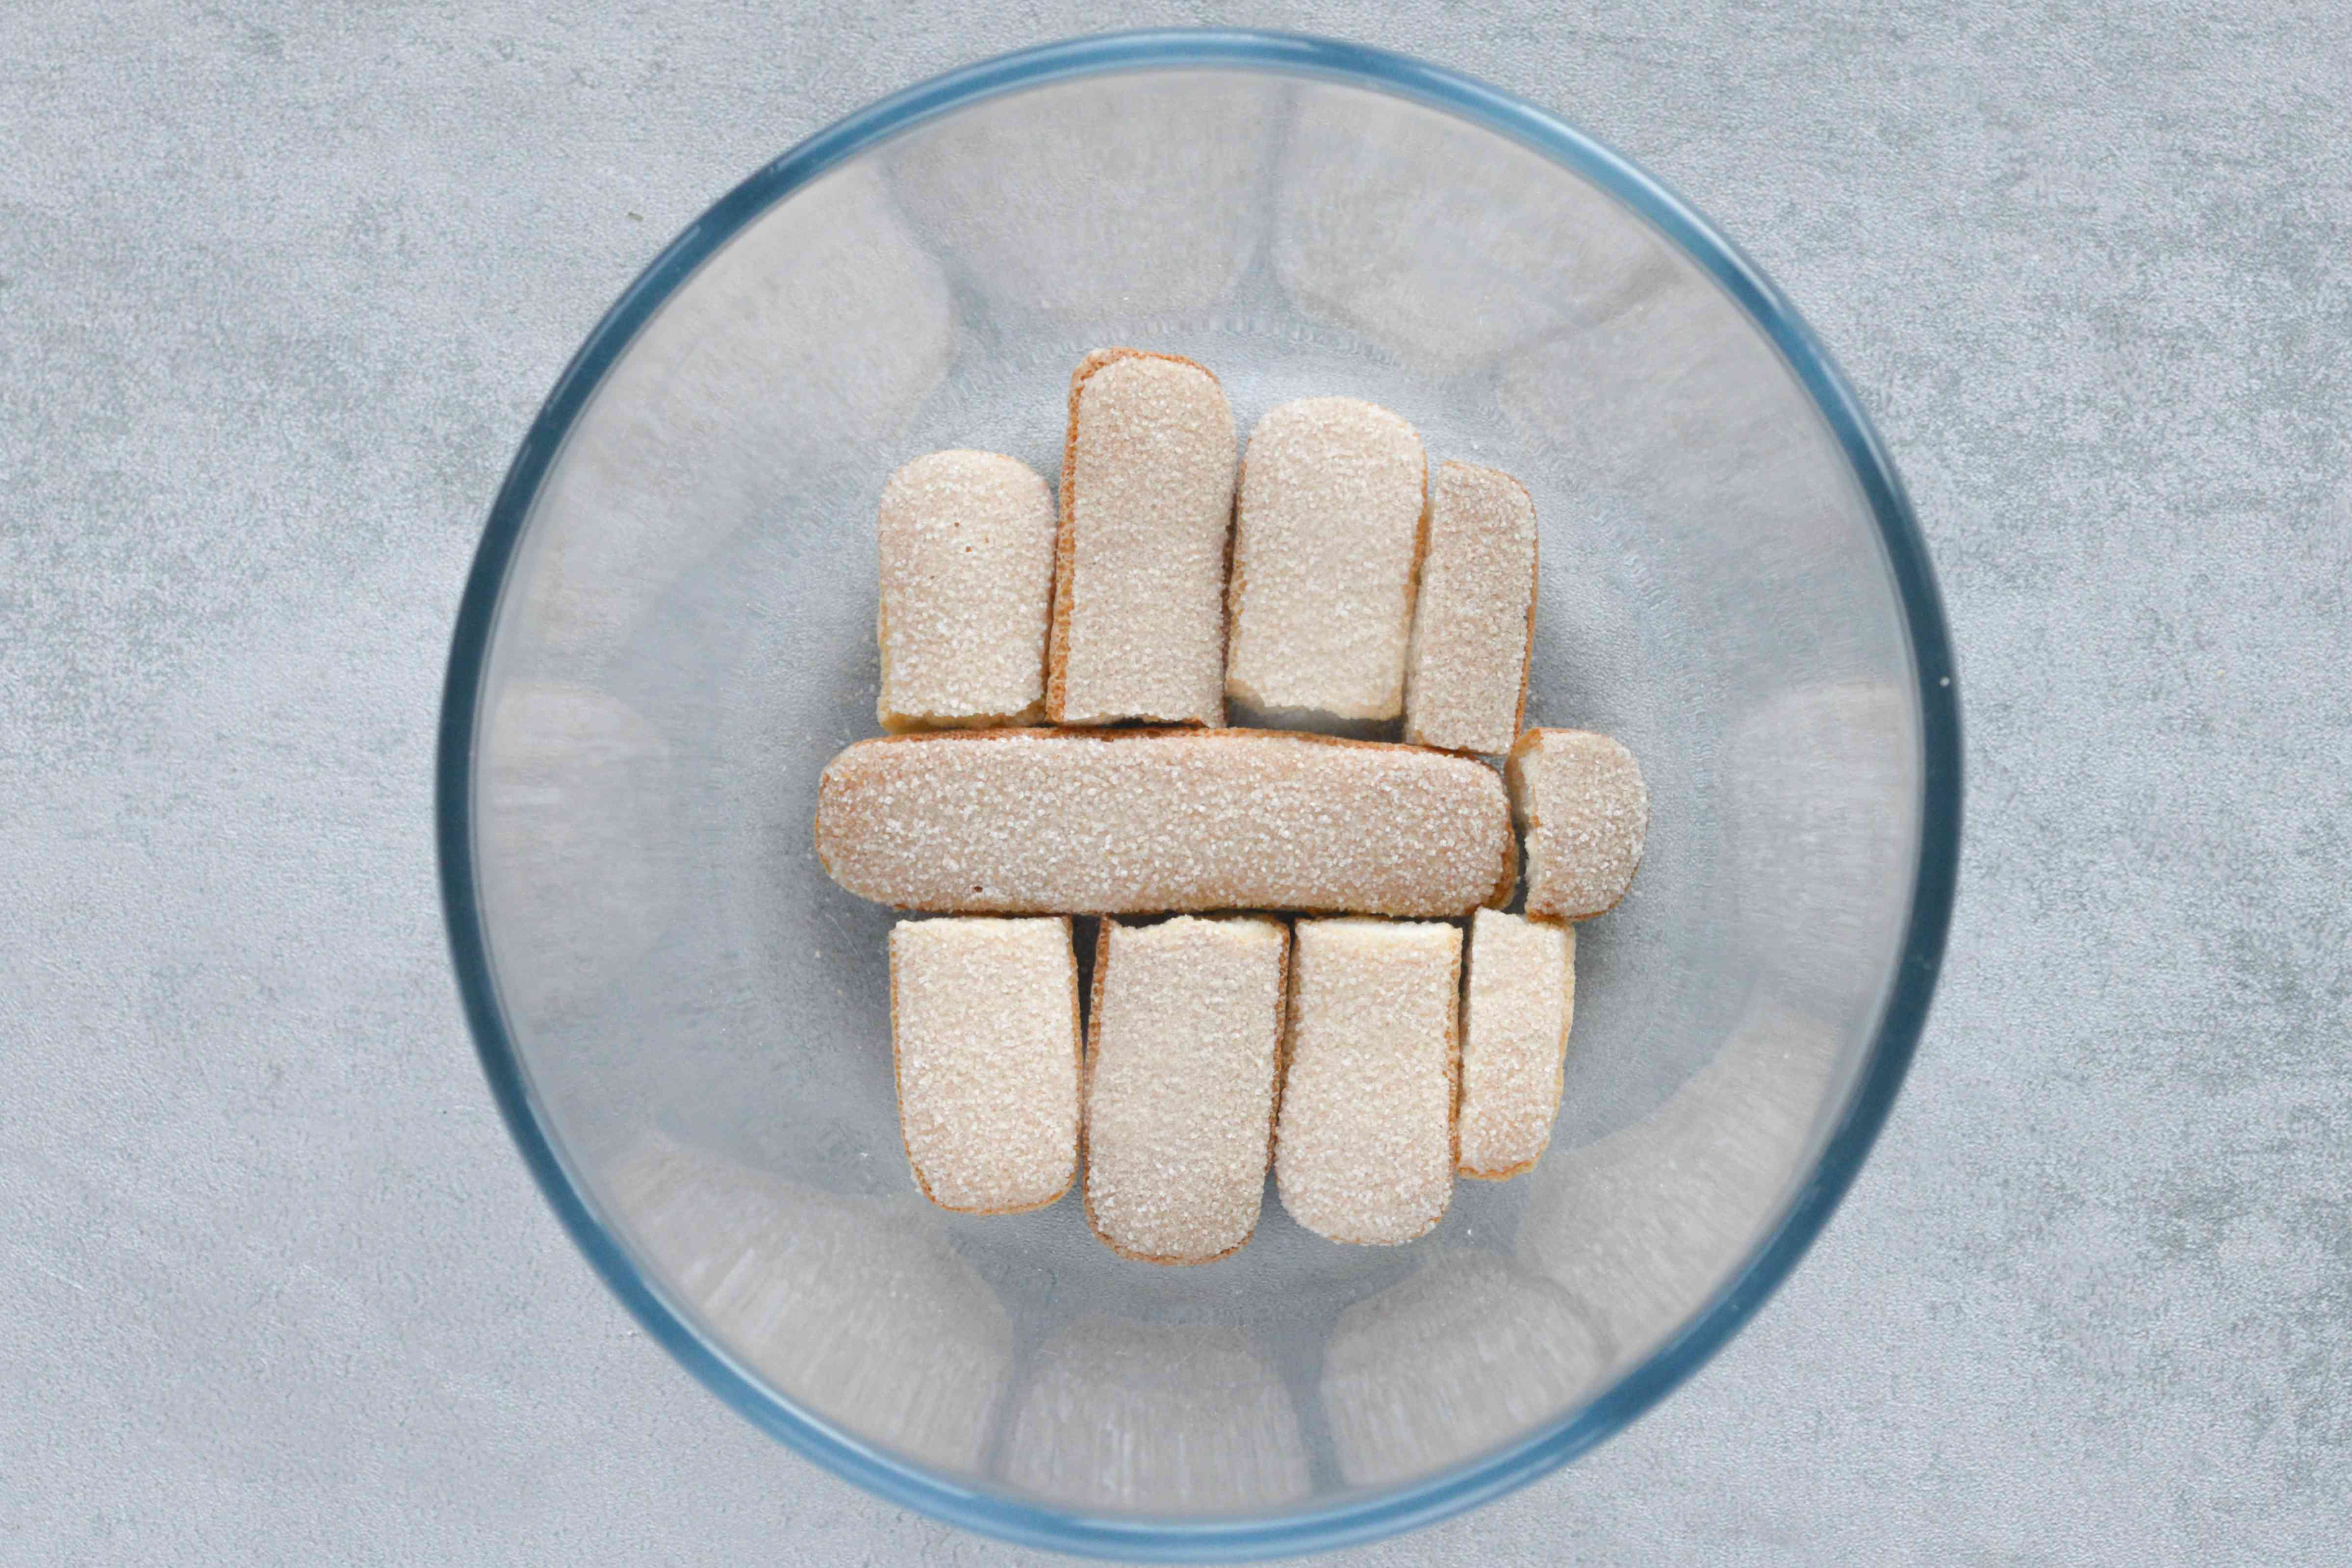 Line the bowl with sponge fingers or cake